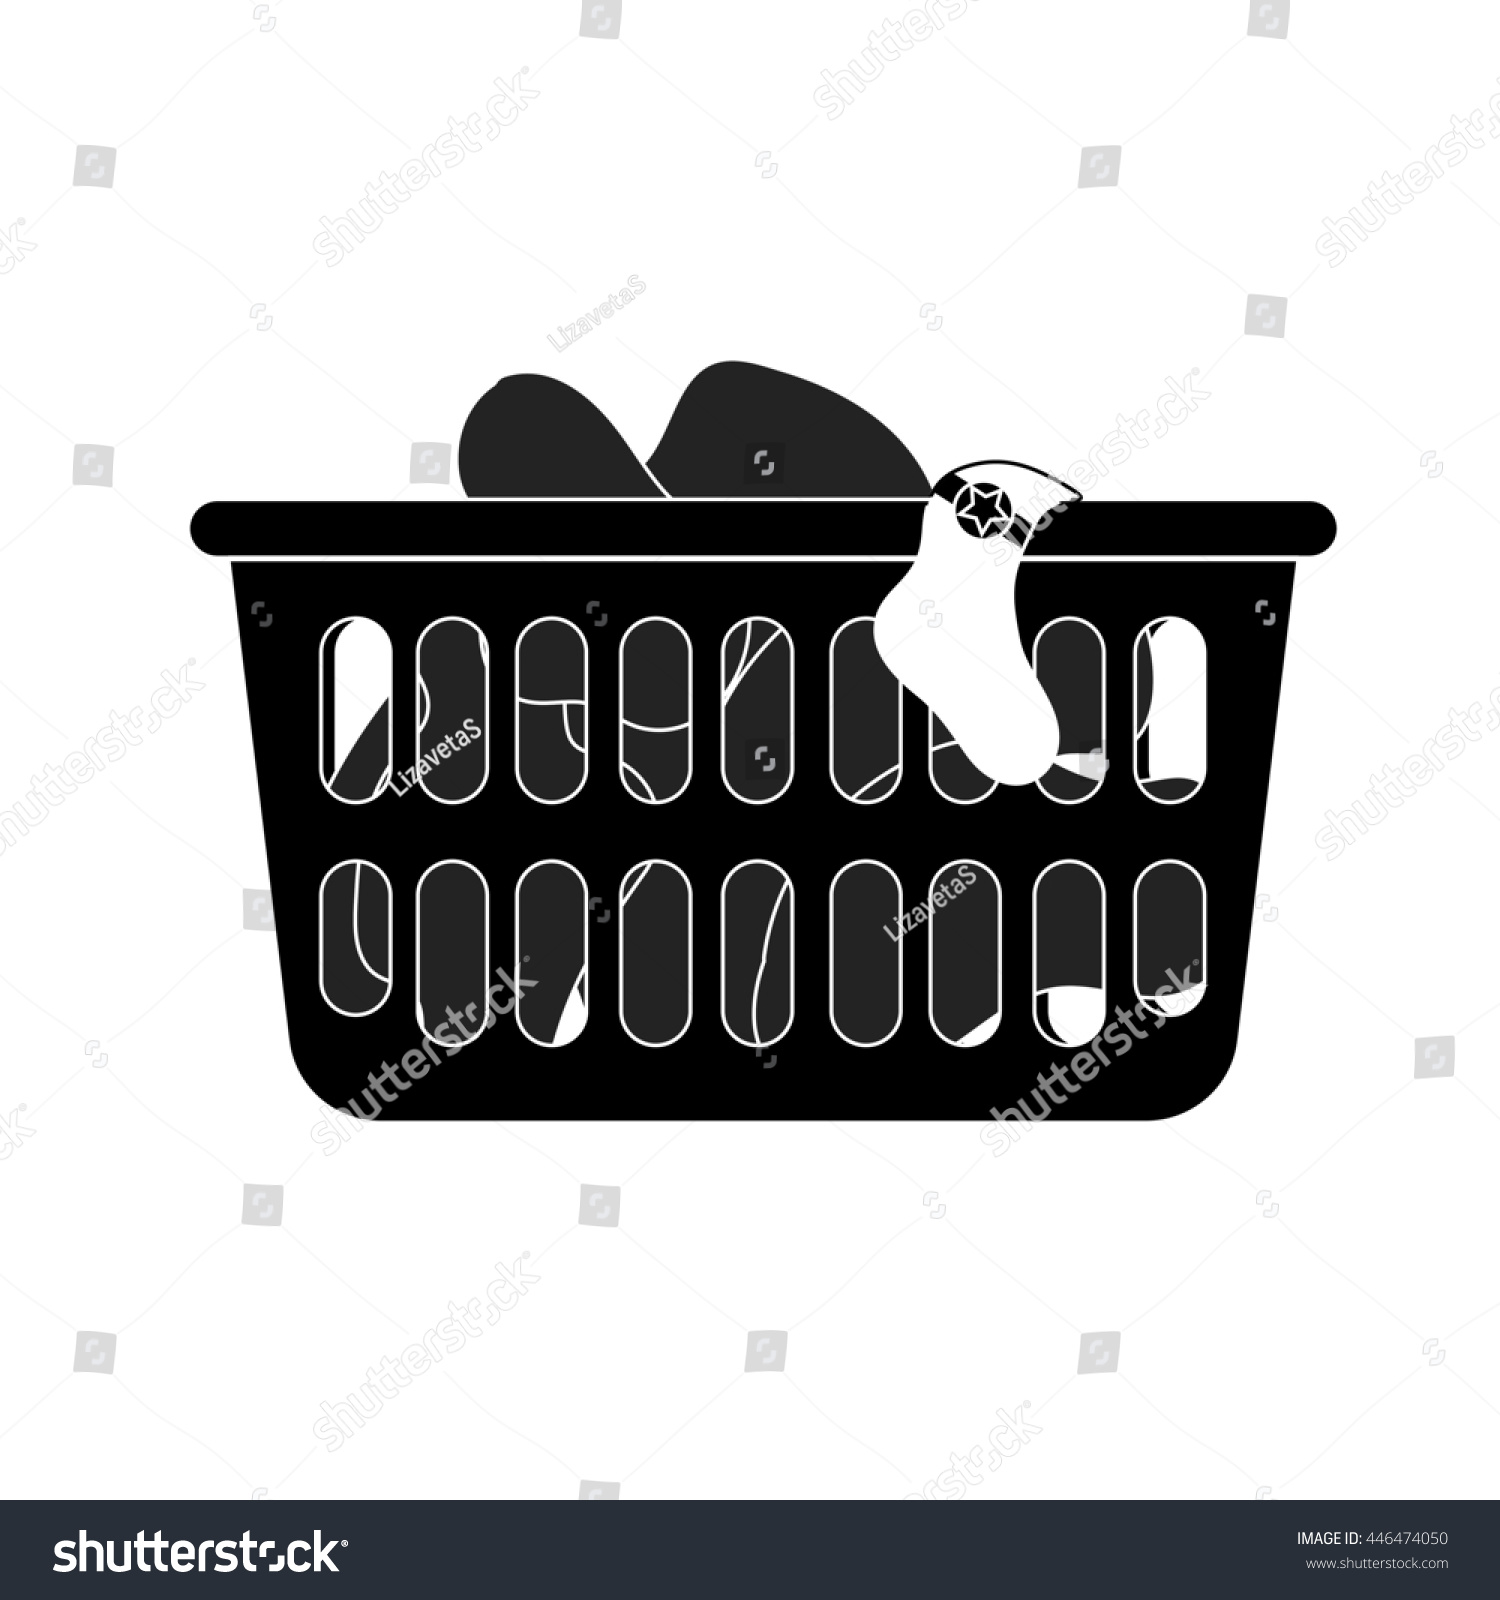 modern style icon of laundry basket with dirty clothes